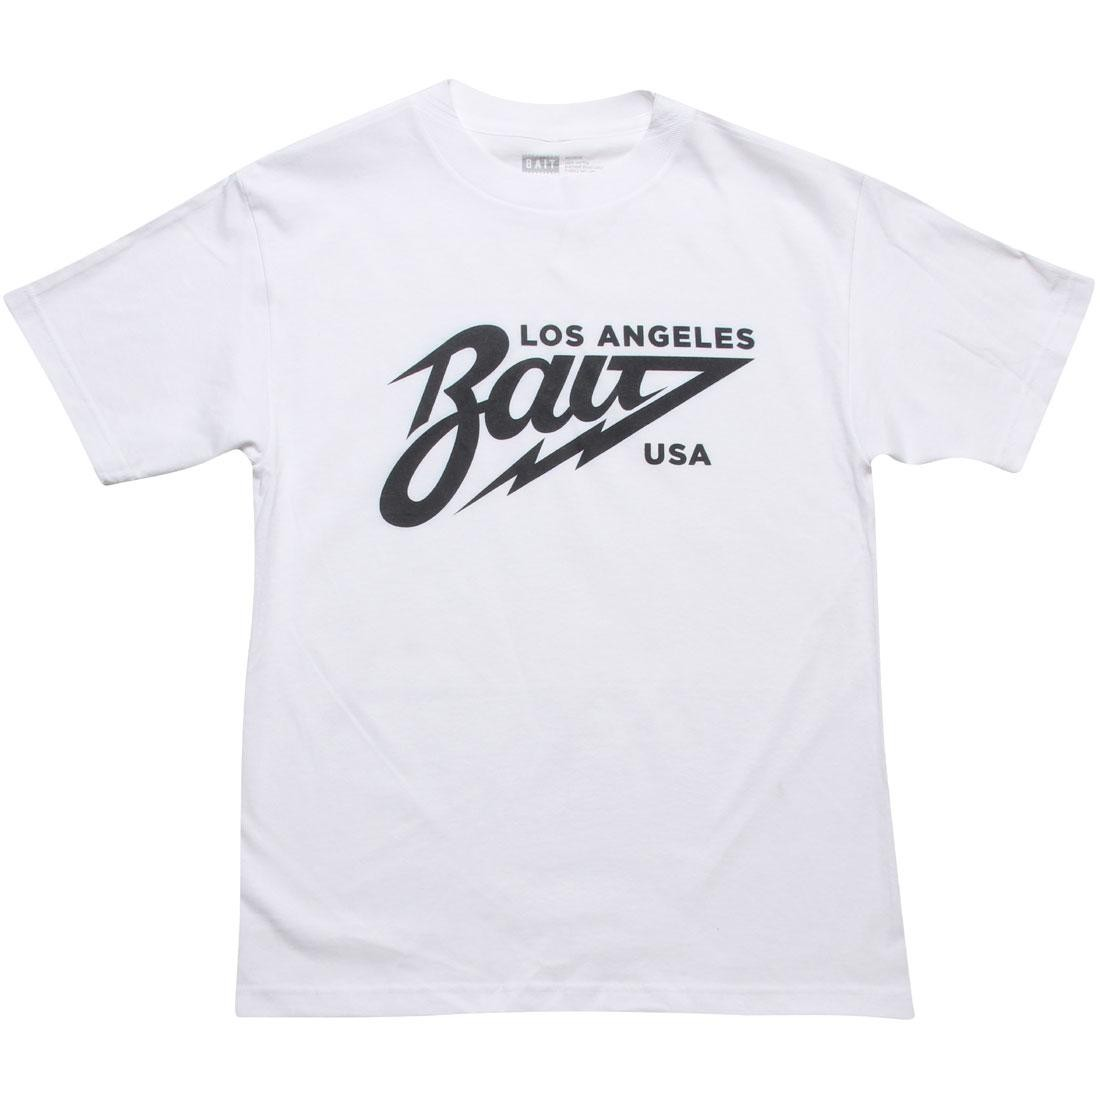 BAIT Los Angeles Tee (white / black)